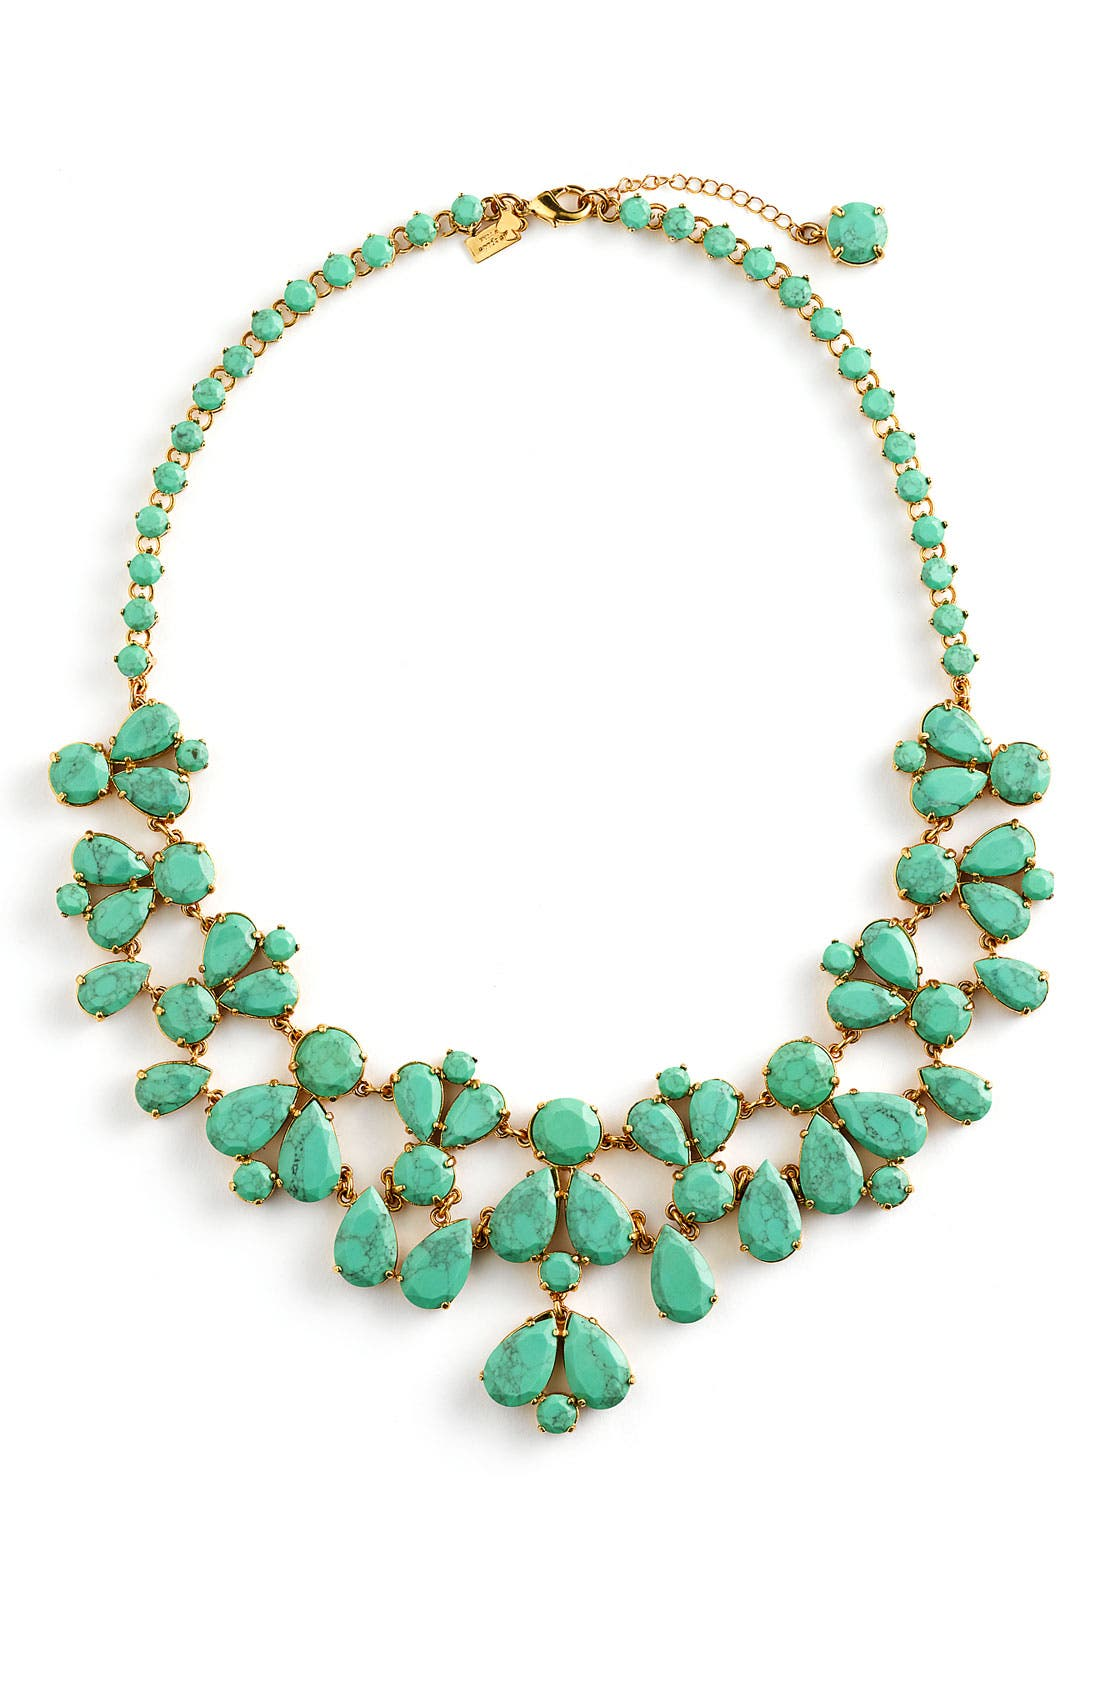 Alternate Image 1 Selected - kate spade new york 'fiorella' floral bib necklace